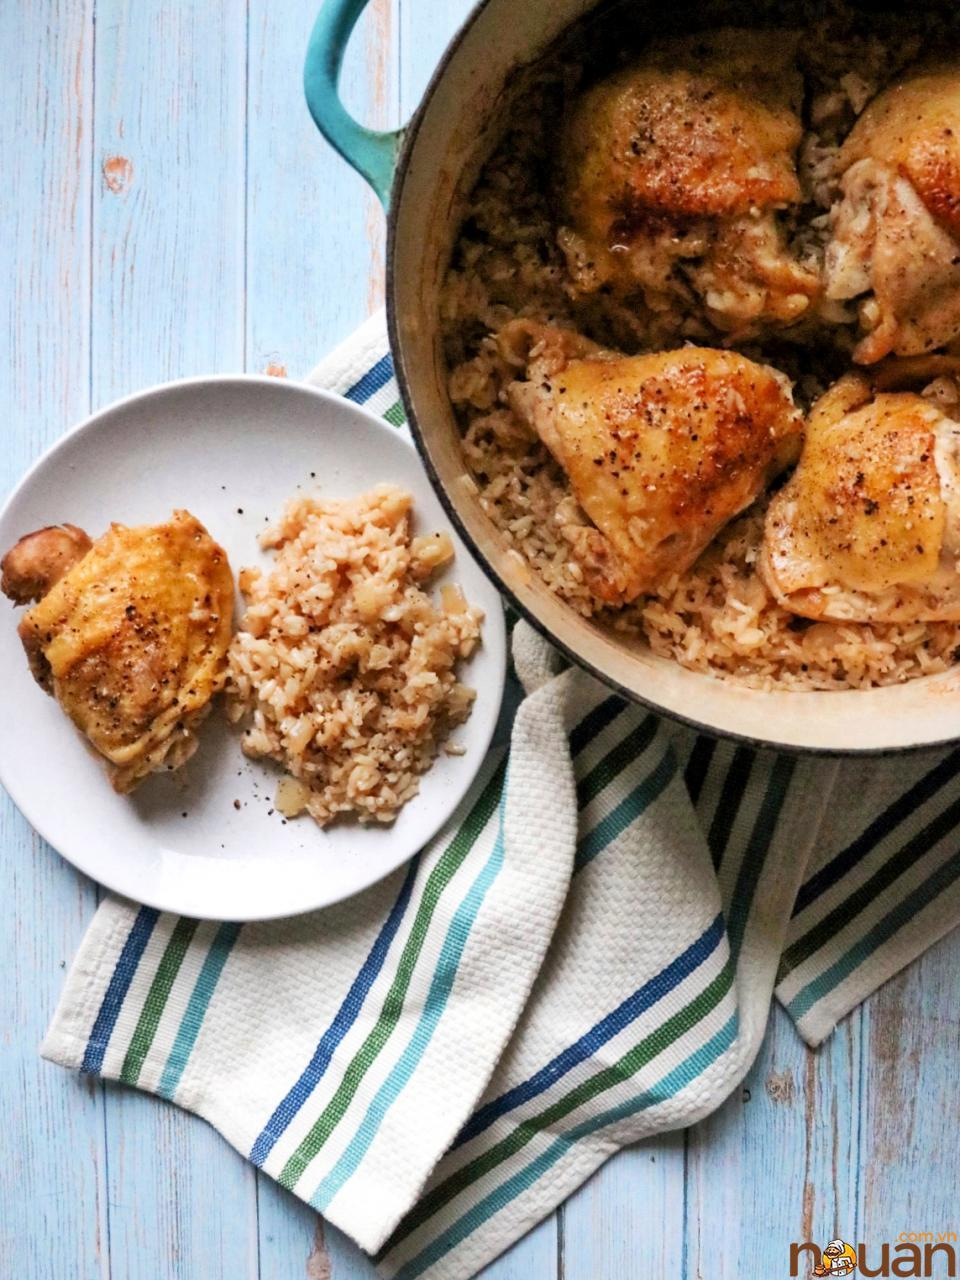 """This chicken and rice dinner is comforting and family-friendly, and it's a great option on cool nights when you need a full meal without dirtying up lots of pans — it's made in a single Dutch oven after all. """"Made it exactly like the recipe stated. Was fantastic! Second time I added a touch less water, so the rice was fluffier. AMAZING! This is definitely going into the weekly rotation for quick and easy meal,"""" writes reviewer Audra."""